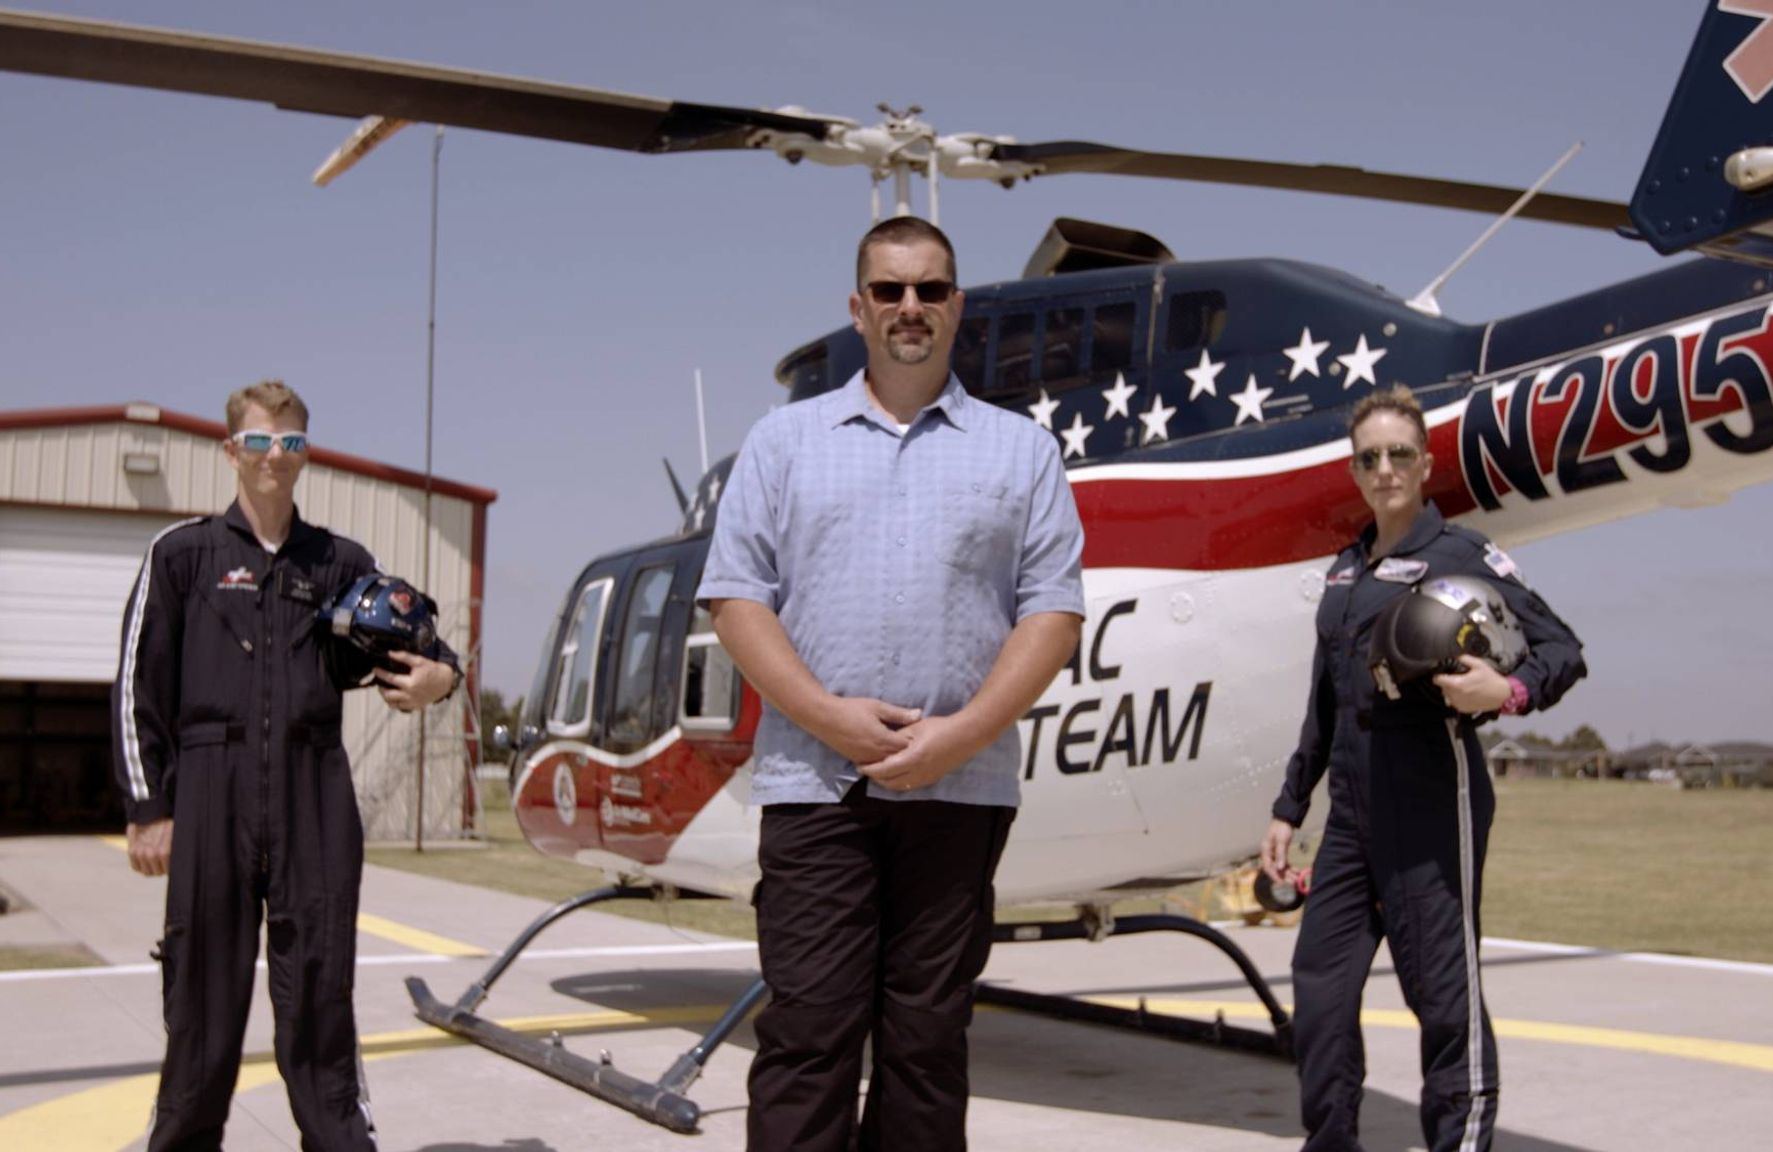 Three men standing on a helicopter tarmac with a helicopter behind them. The man in the center is wearing a blue shirt and sunglasses. The men to either side are in uniform.